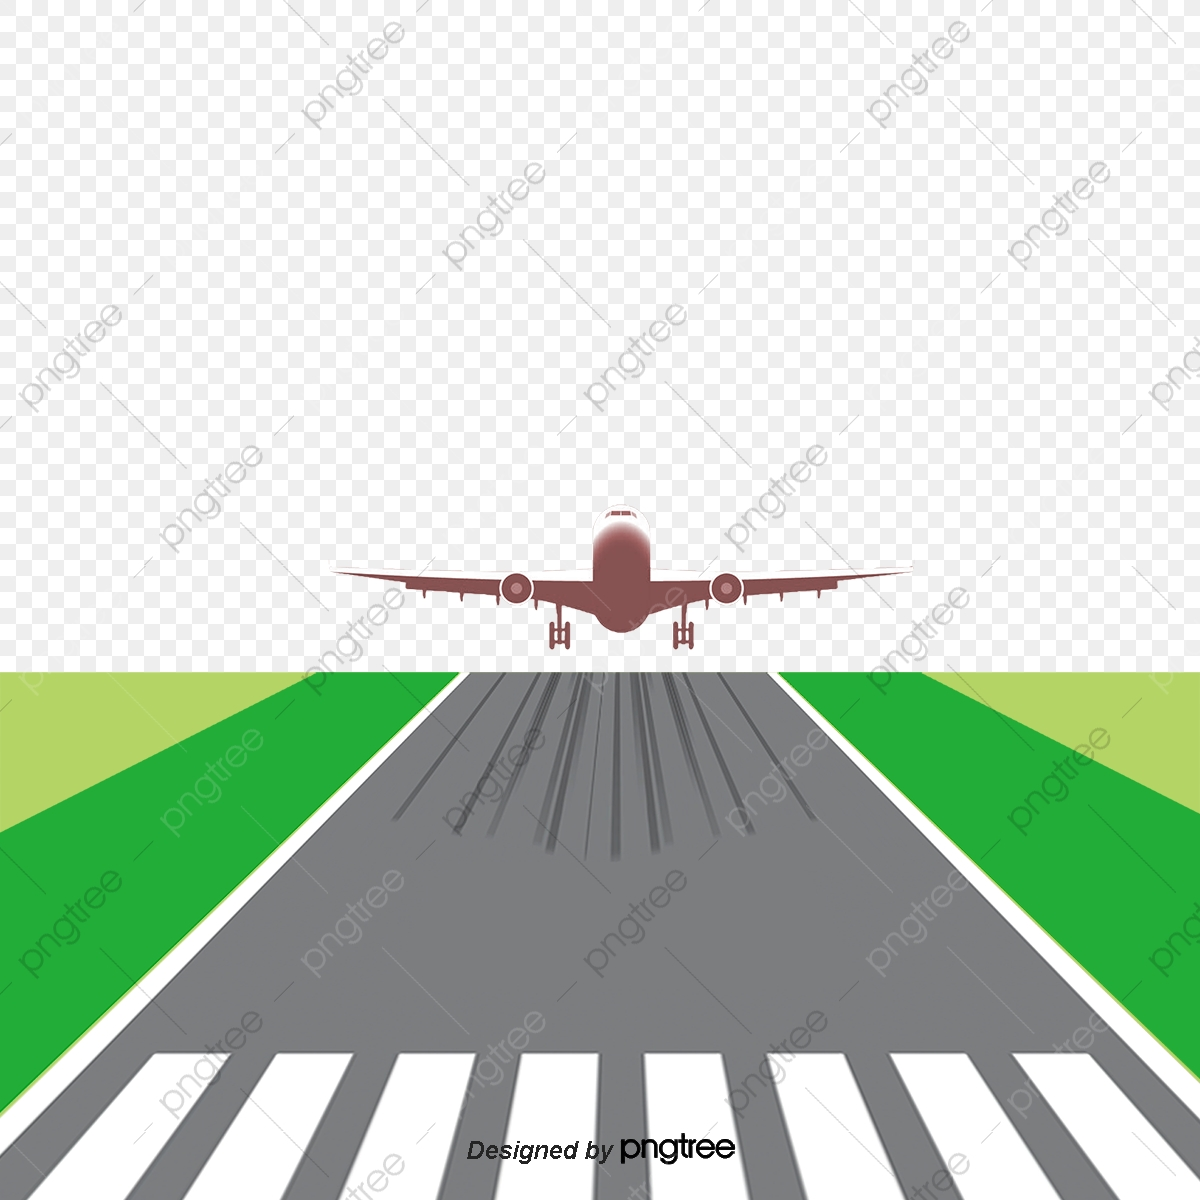 Clipart airplane track. Sun running on the